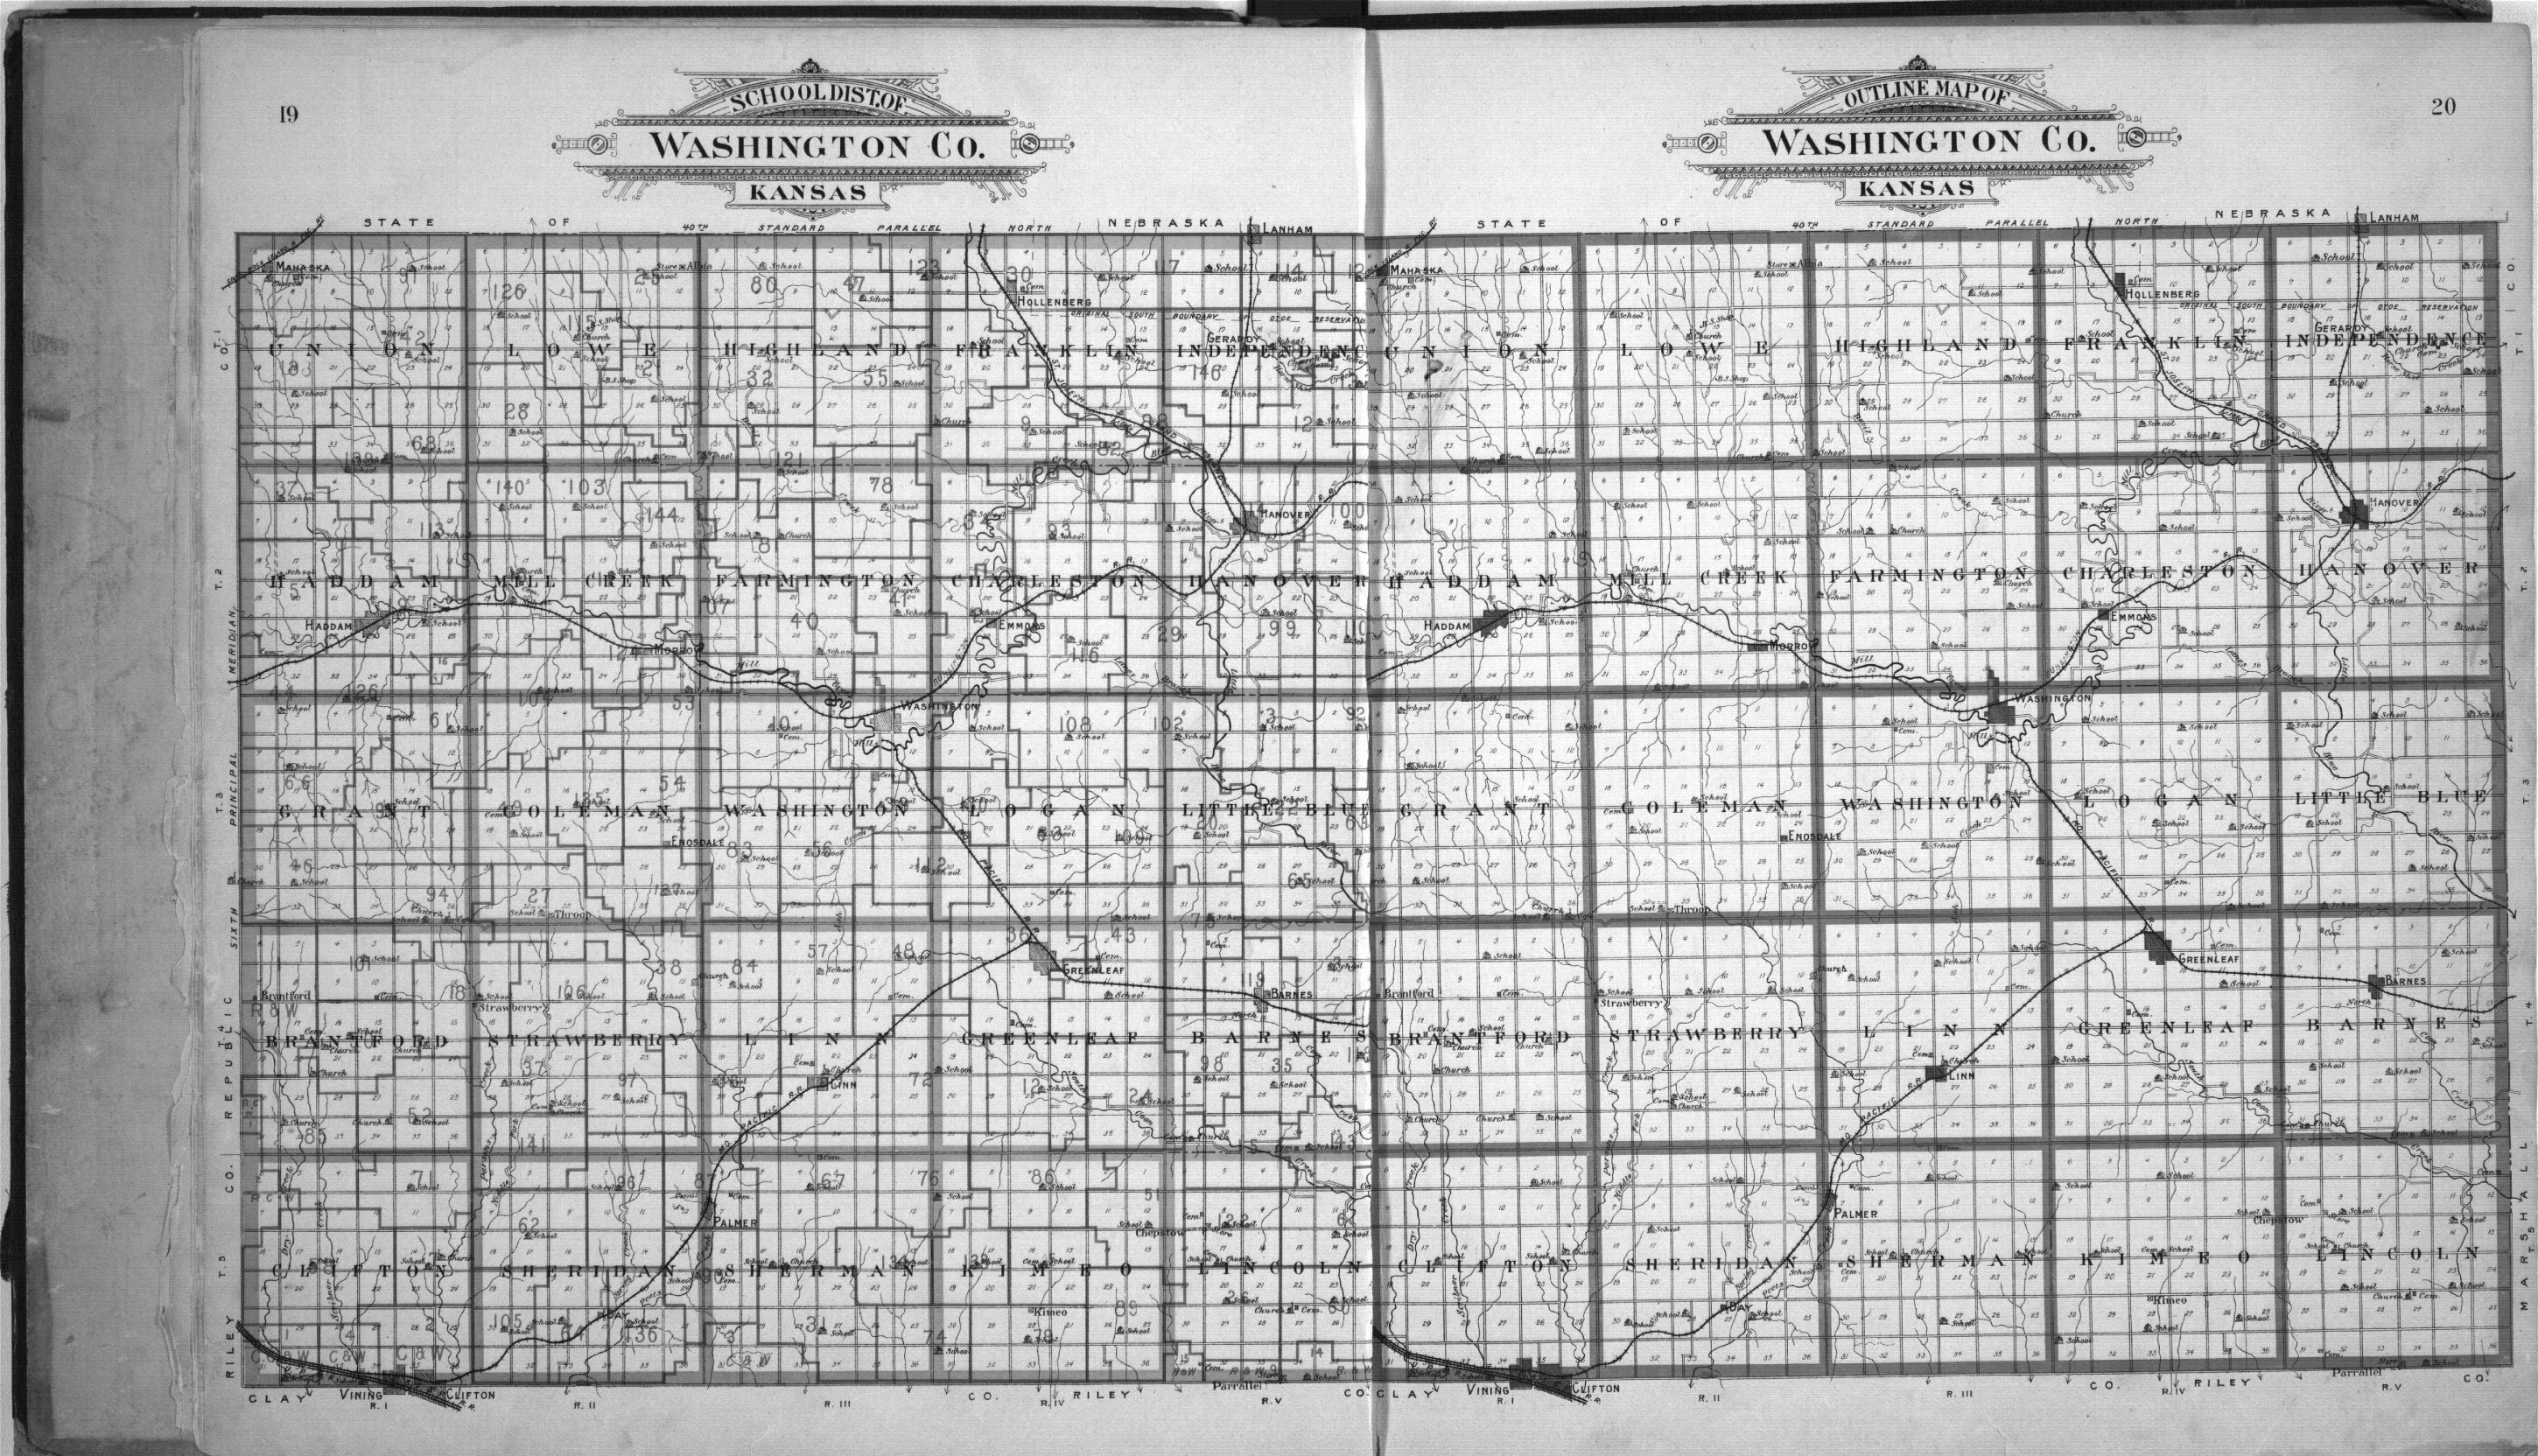 Plat book of Washington County, Kansas - 19 & 20